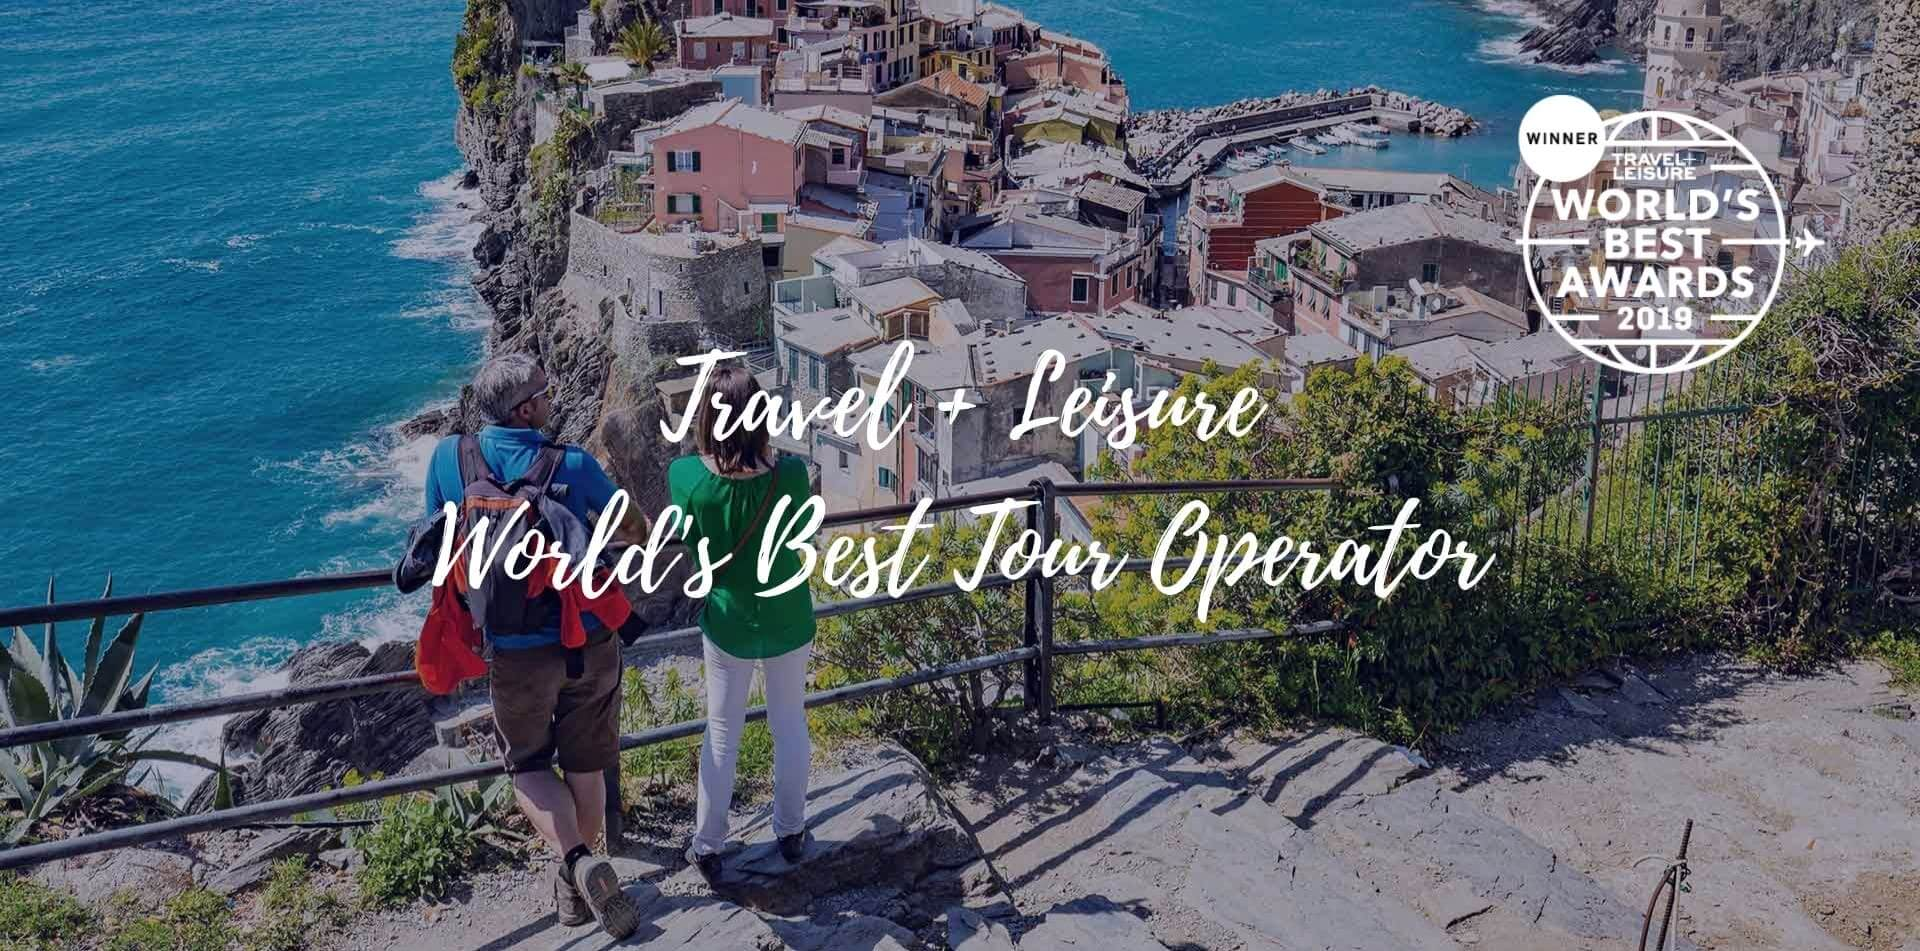 Europe Italy Cinque Terre Vernazza Travel + Leisure Worlds Best Tour Operator colorful village - luxury vacation destinations